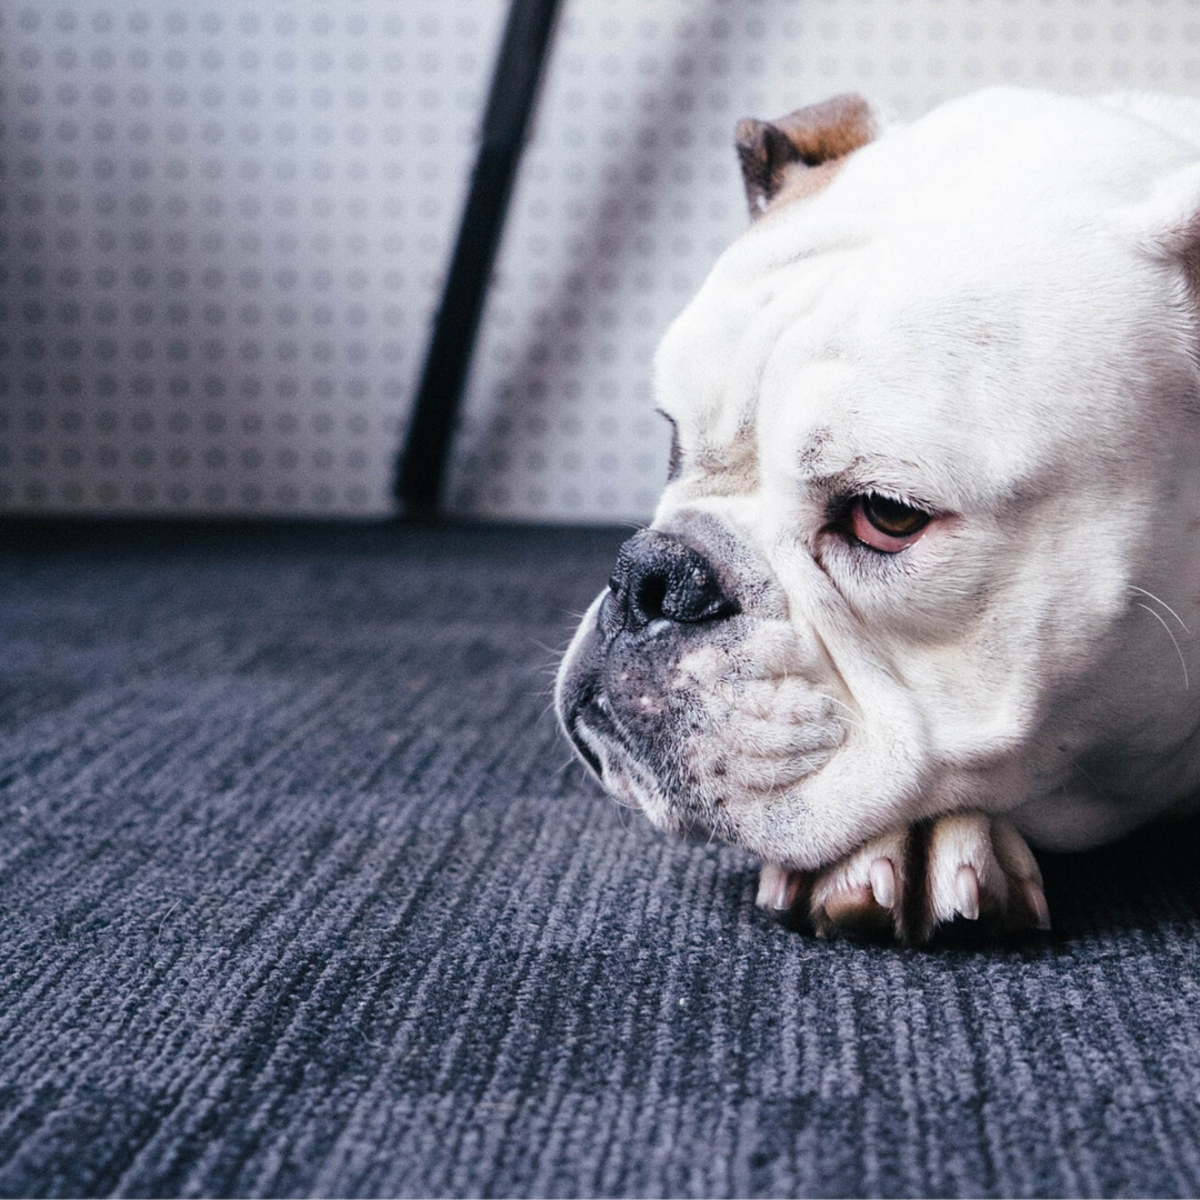 You can treat your carpet with Borax, but if you have animals, you will want to use pet-friendly products.